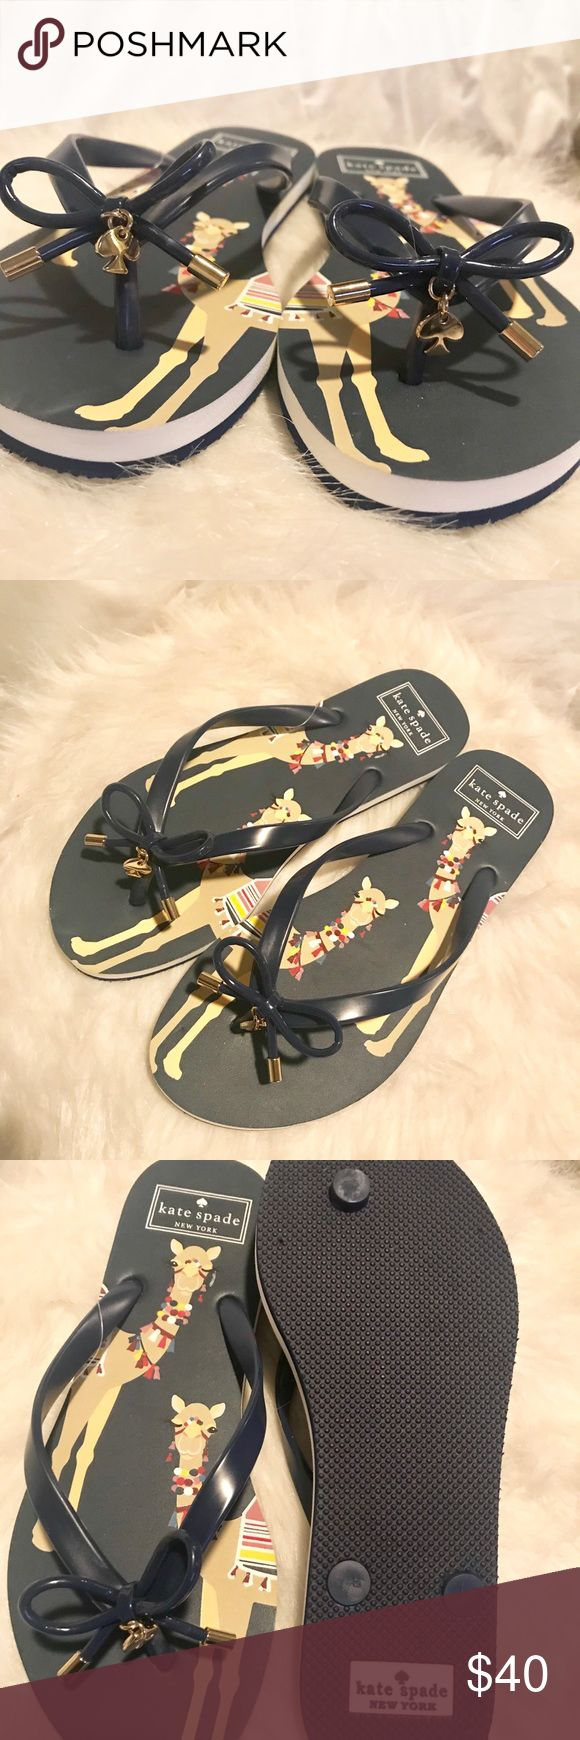 Kate Spade Camel Flip Flops How cute are these Camel flip flops?!?? Brand new/never worn kate spade Shoes Sandals